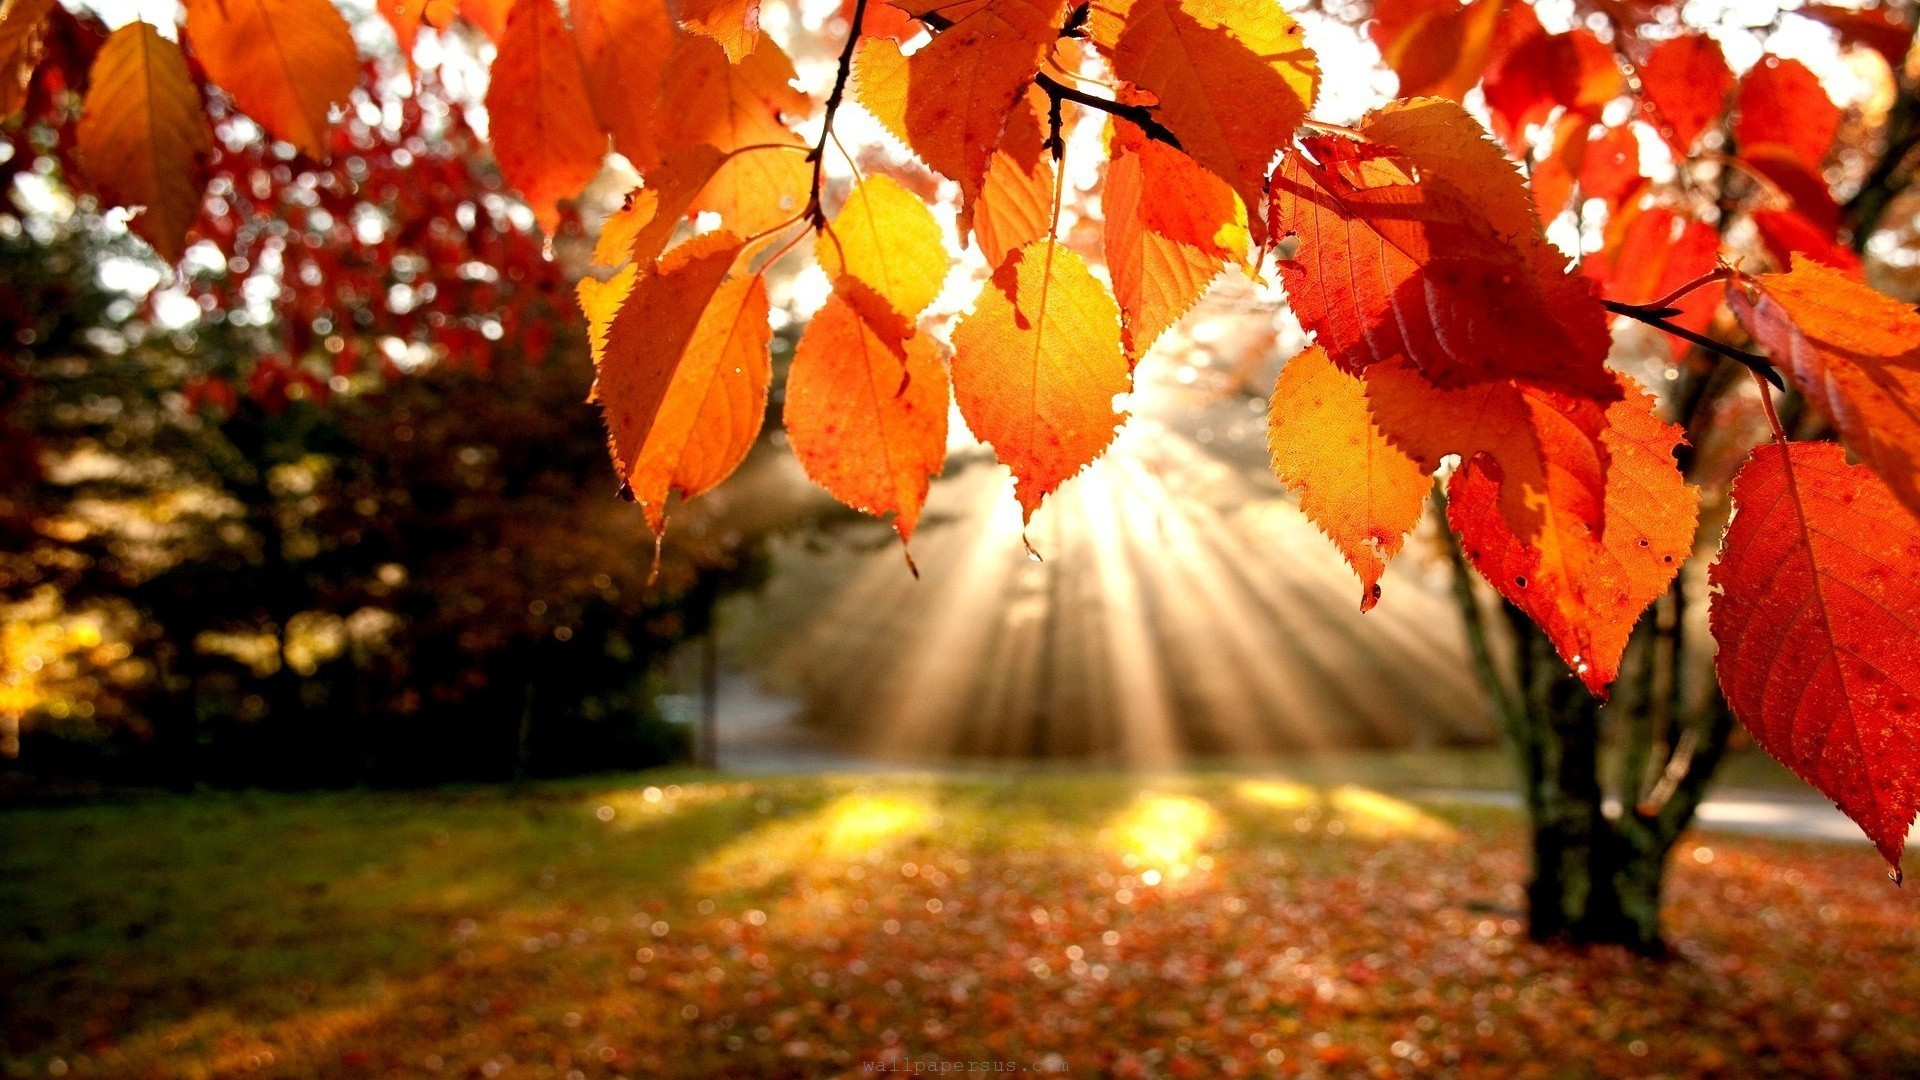 Trees Autumn Leaves Fall Sunlight Landscapes Nature Vincent